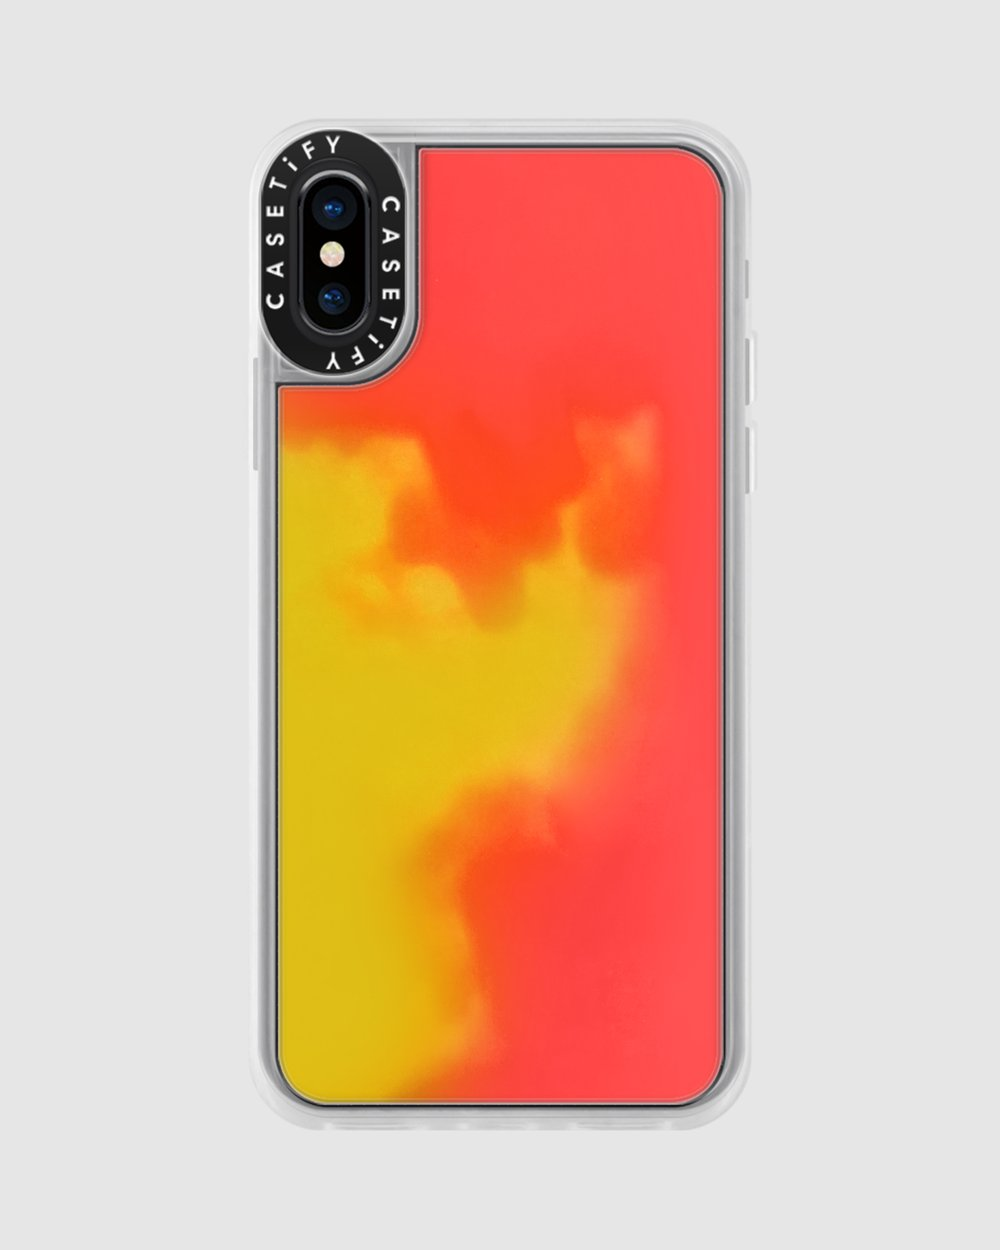 new concept 0776c ae916 CASETiFY Neon Sand Liquid Case for iPhone XS/ iPhone X - Flame (Yellow /  Orange)